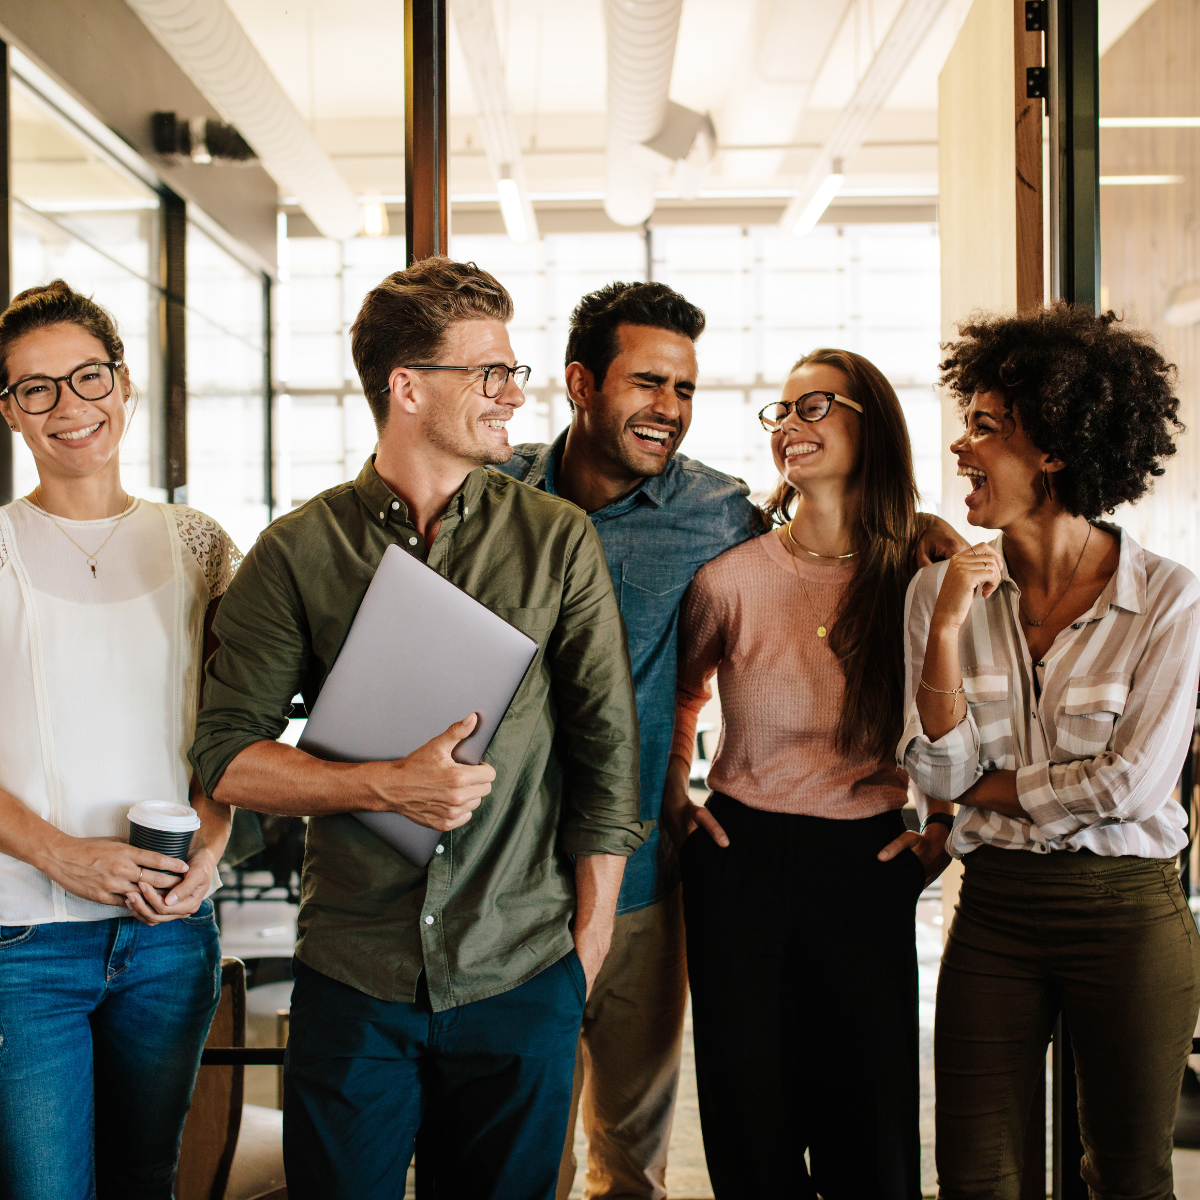 Putting the Human Back into HR: 2021 Trends, the COVID-19 Silver Lining